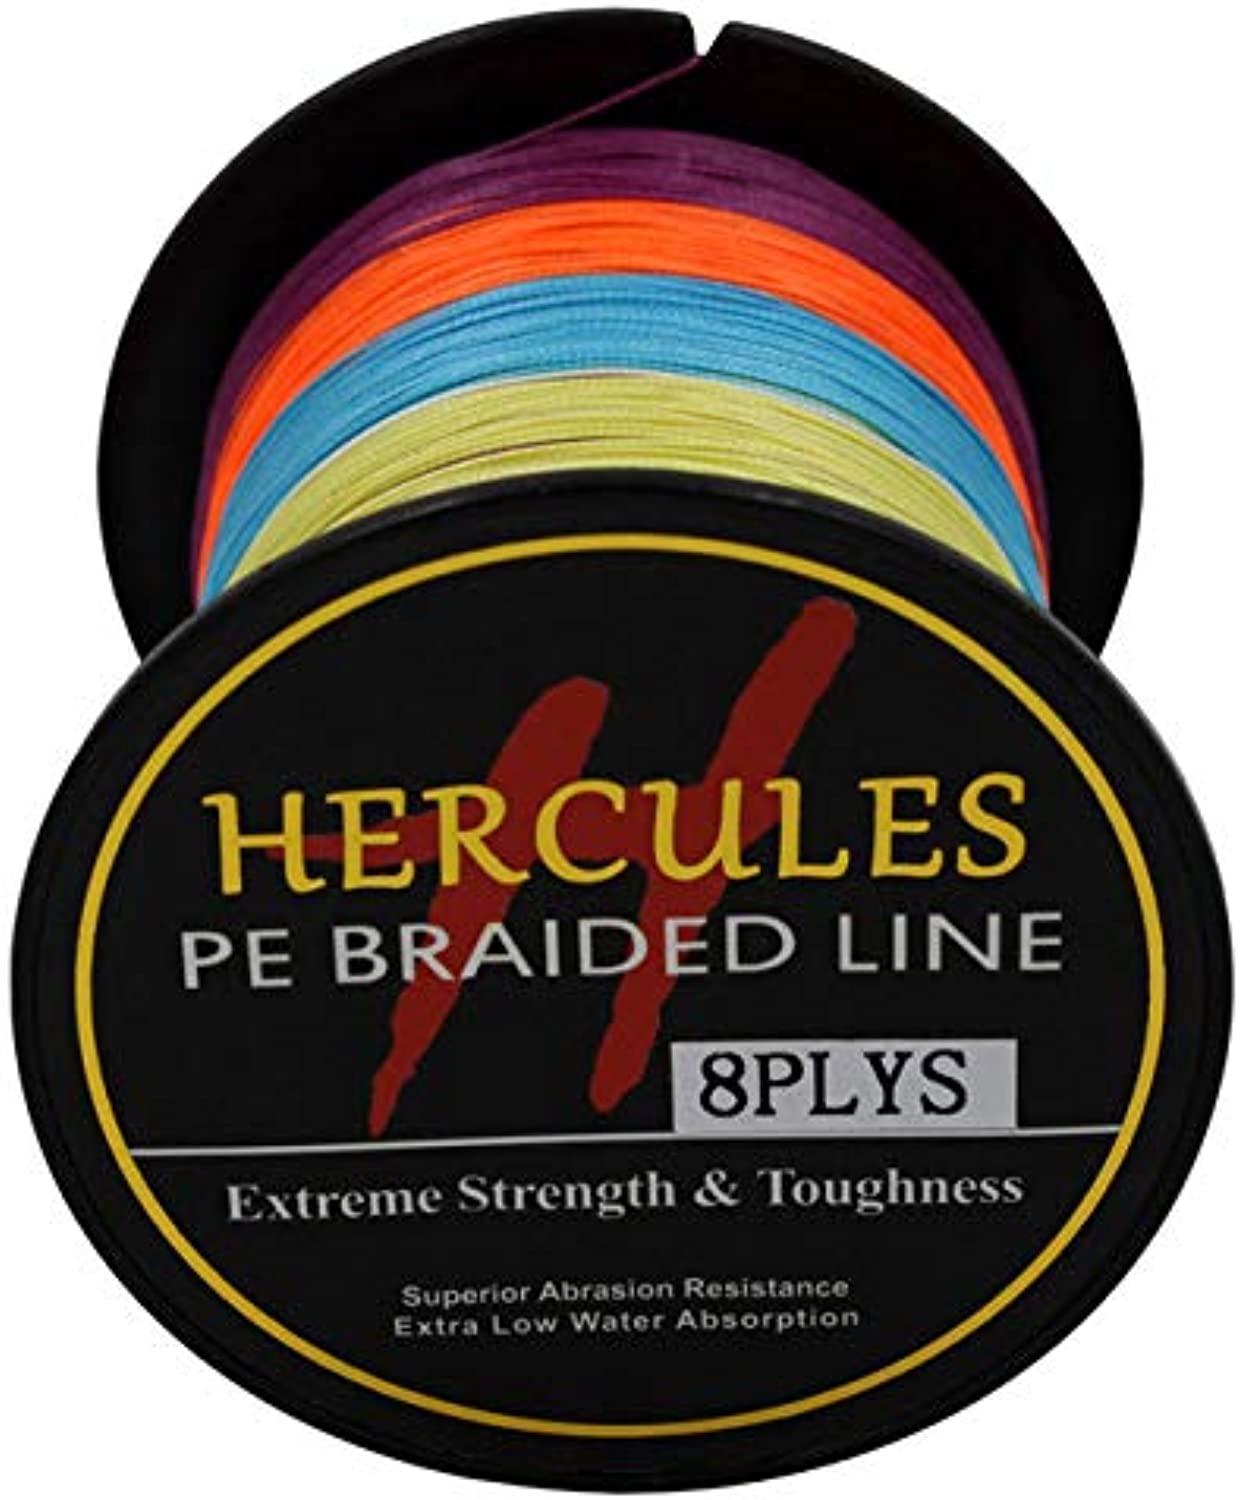 CUSHY Hercules 8 Strands PE Braided Fishing Line Saltwater Fishing Weave Extreme Super Strong Super Power Casting 100M  Multi, 32.0